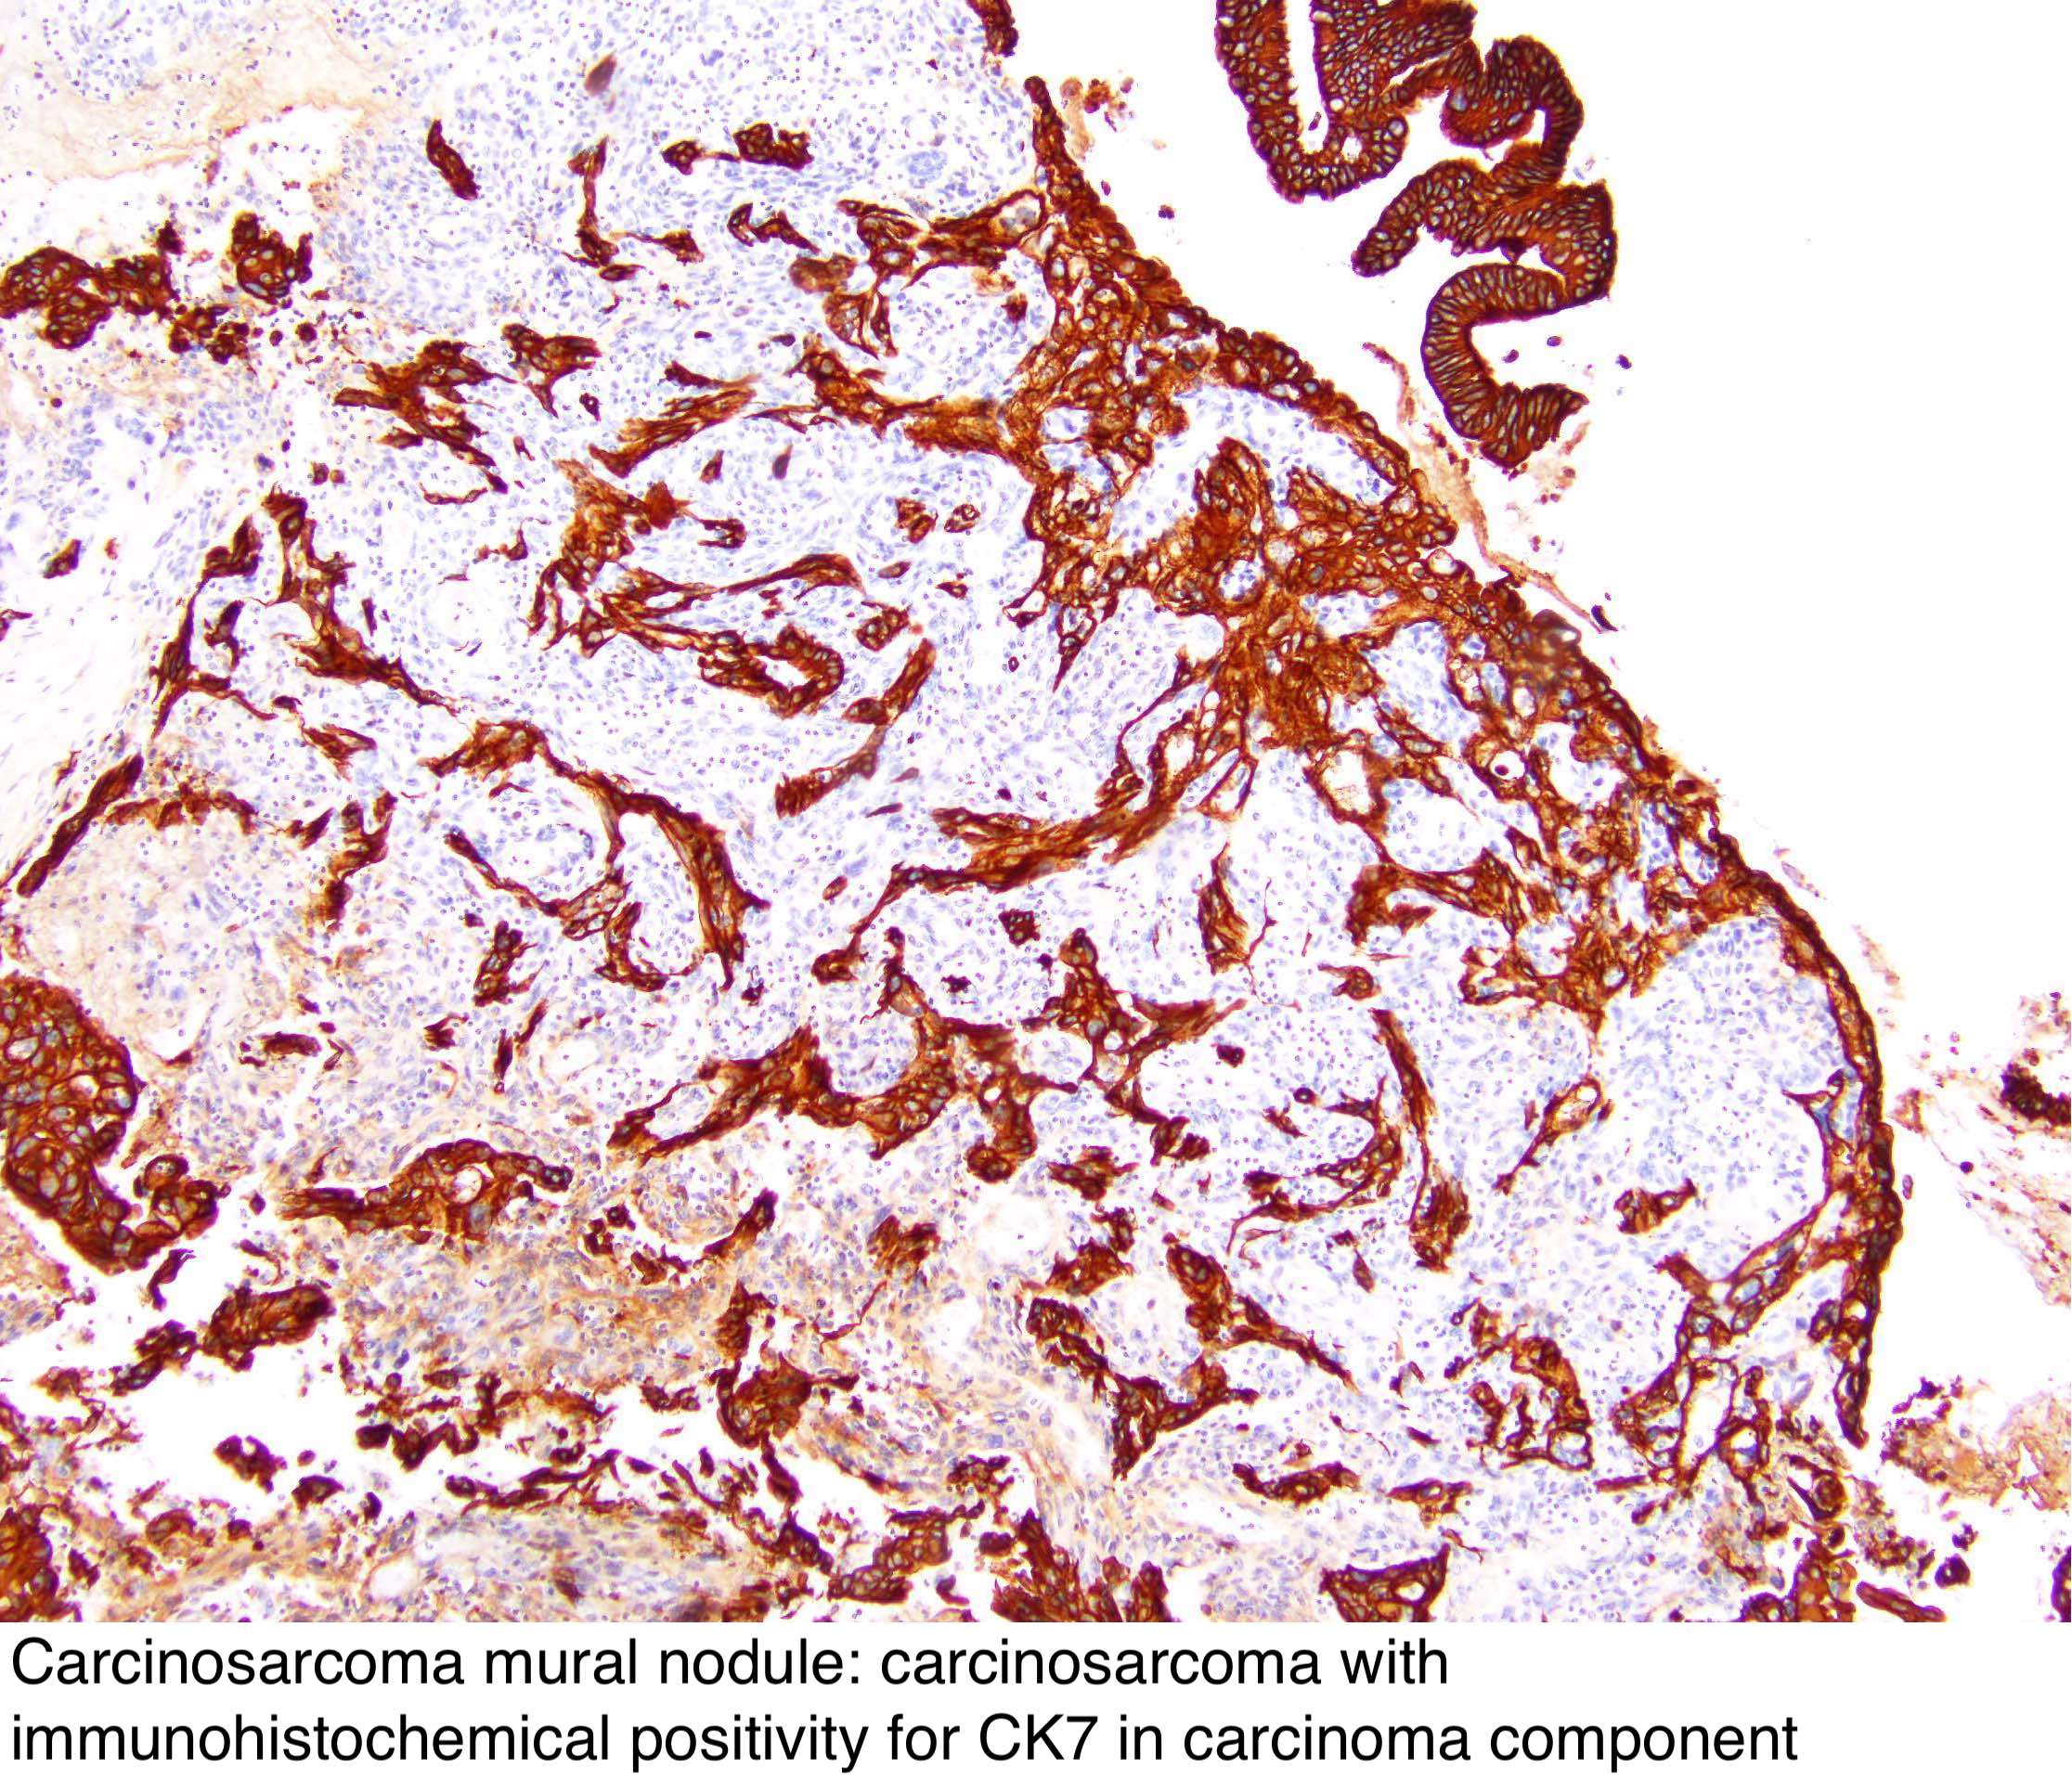 Pathology Outlines Mural Nodules In Mucinous Cystic Neoplasms